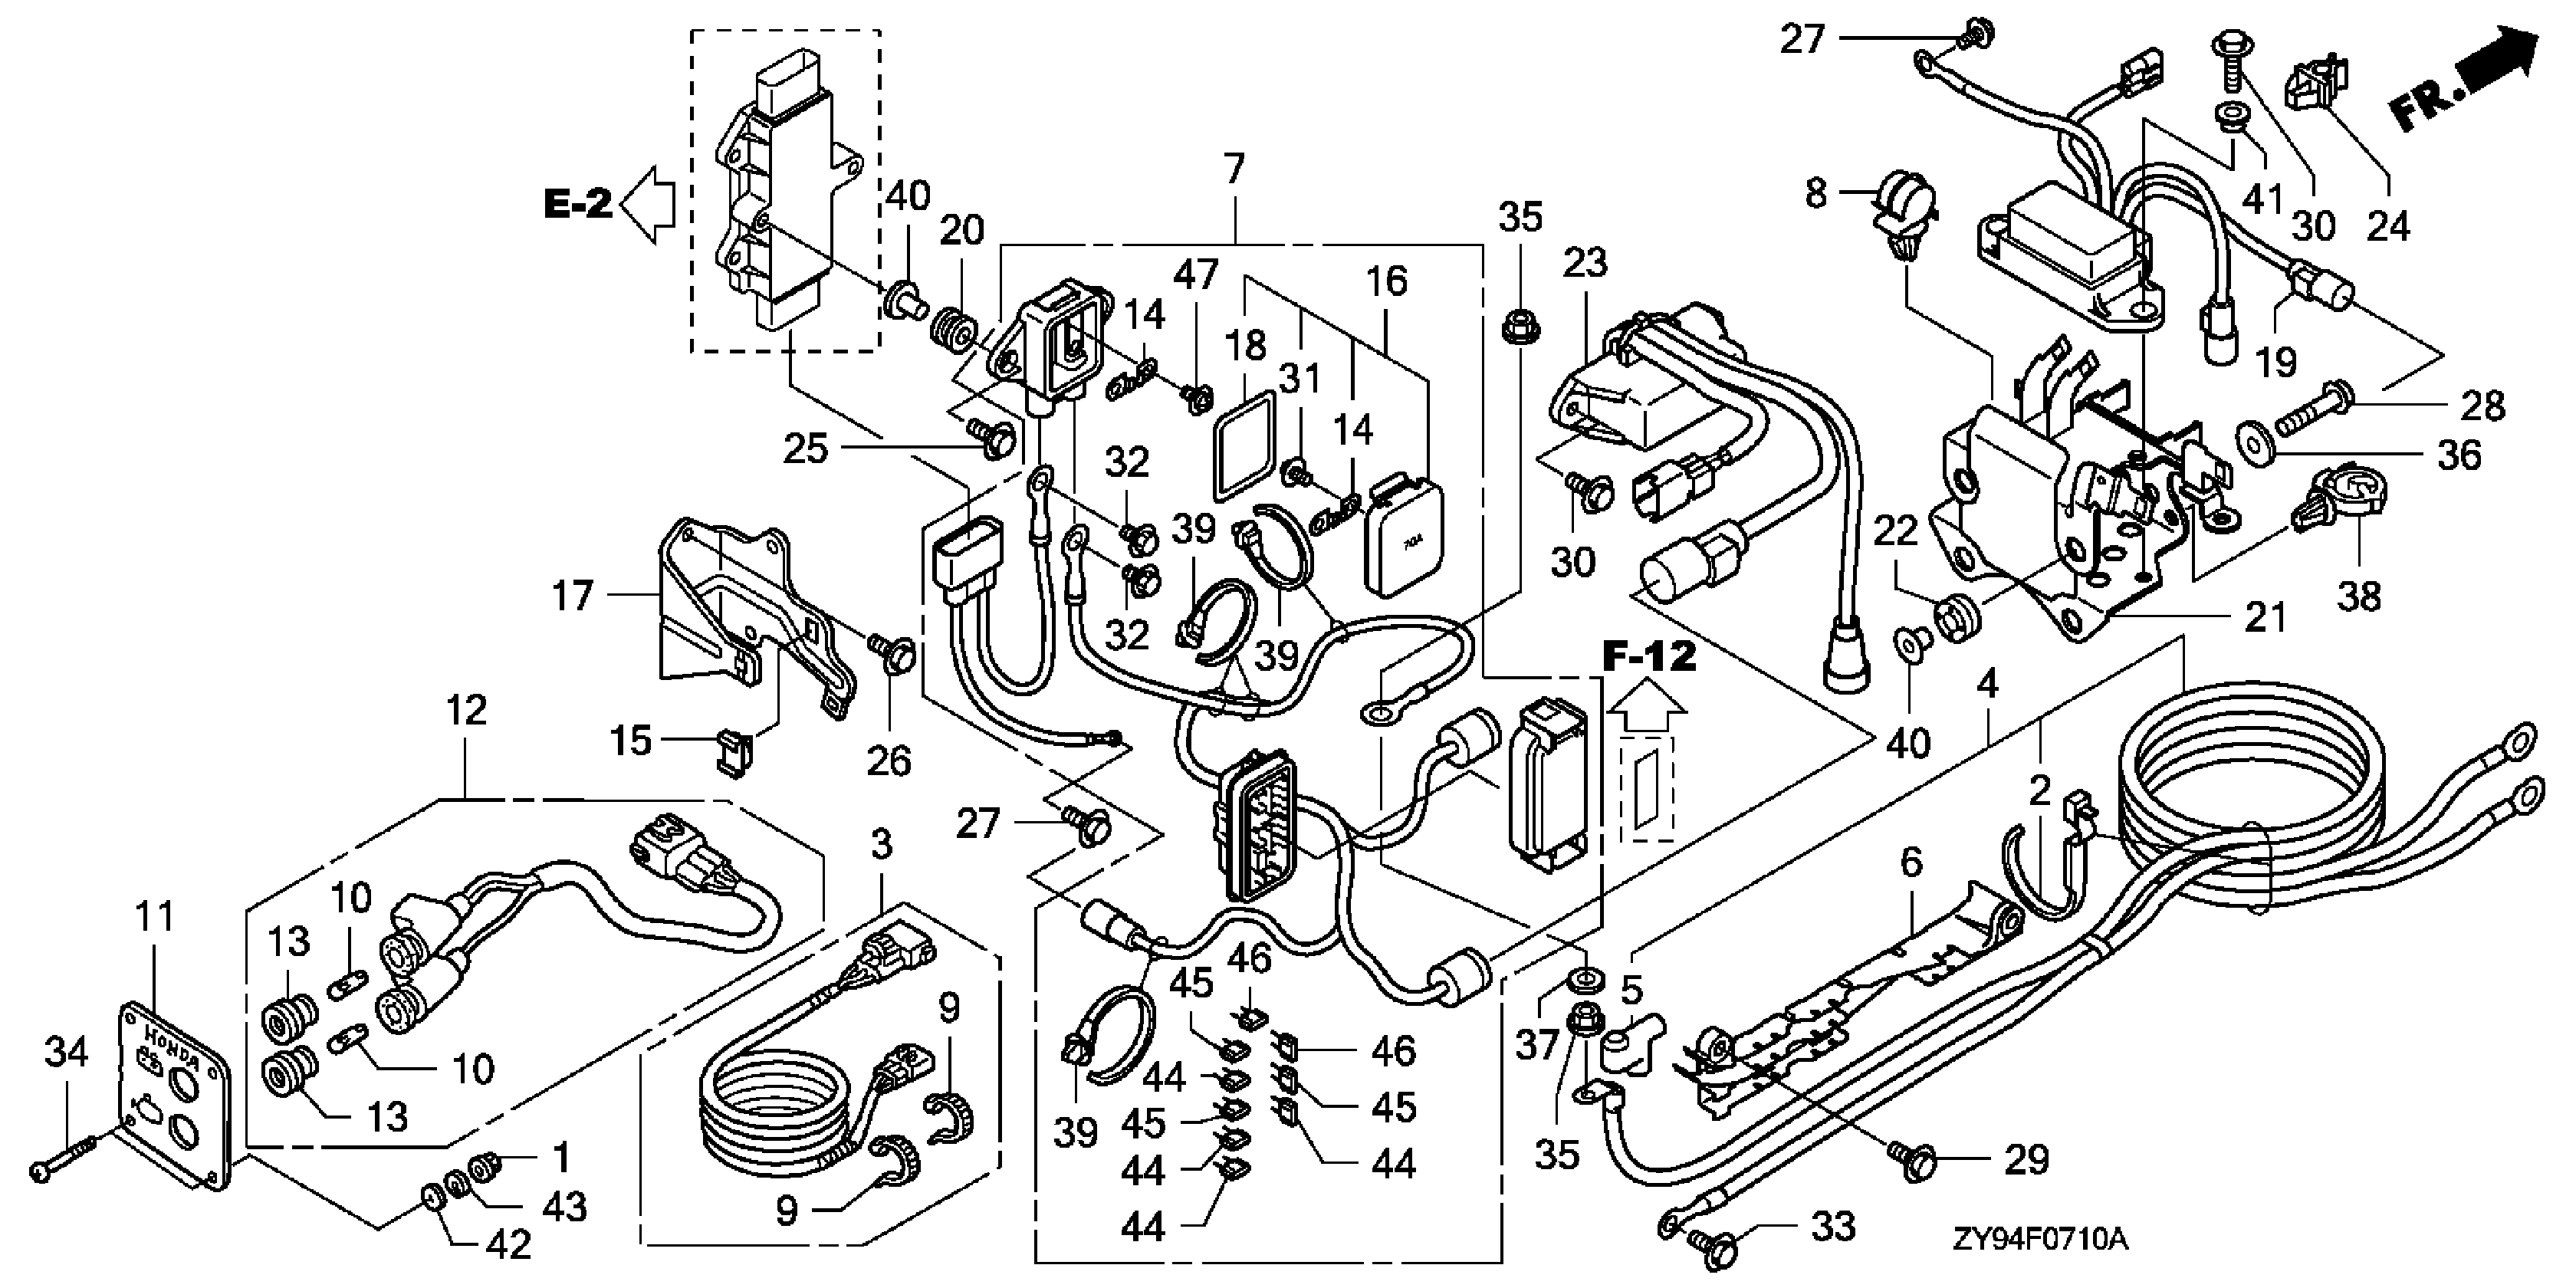 Kioti Engine Diagram - Lir Wiring 101 on international tractor wiring diagrams, case tractor wiring diagrams, antique tractor wiring diagrams, kubota tractor wiring diagrams, montana tractors wiring diagrams, garden tractor ignition wiring diagrams, john deere tractor wiring diagrams, fermec tractor wiring diagrams, universal tractor wiring diagrams, mahindra wiring diagrams, long tractor wiring diagrams, bolens tractor wiring diagrams, kioti dk35 wiring-diagram, gravely wiring diagrams, kubota tractor parts diagrams, minneapolis moline tractor wiring diagrams, kioti ck25 wiring-diagram, create chess diagrams, ford tractor wiring diagrams, century tractor wiring diagrams,